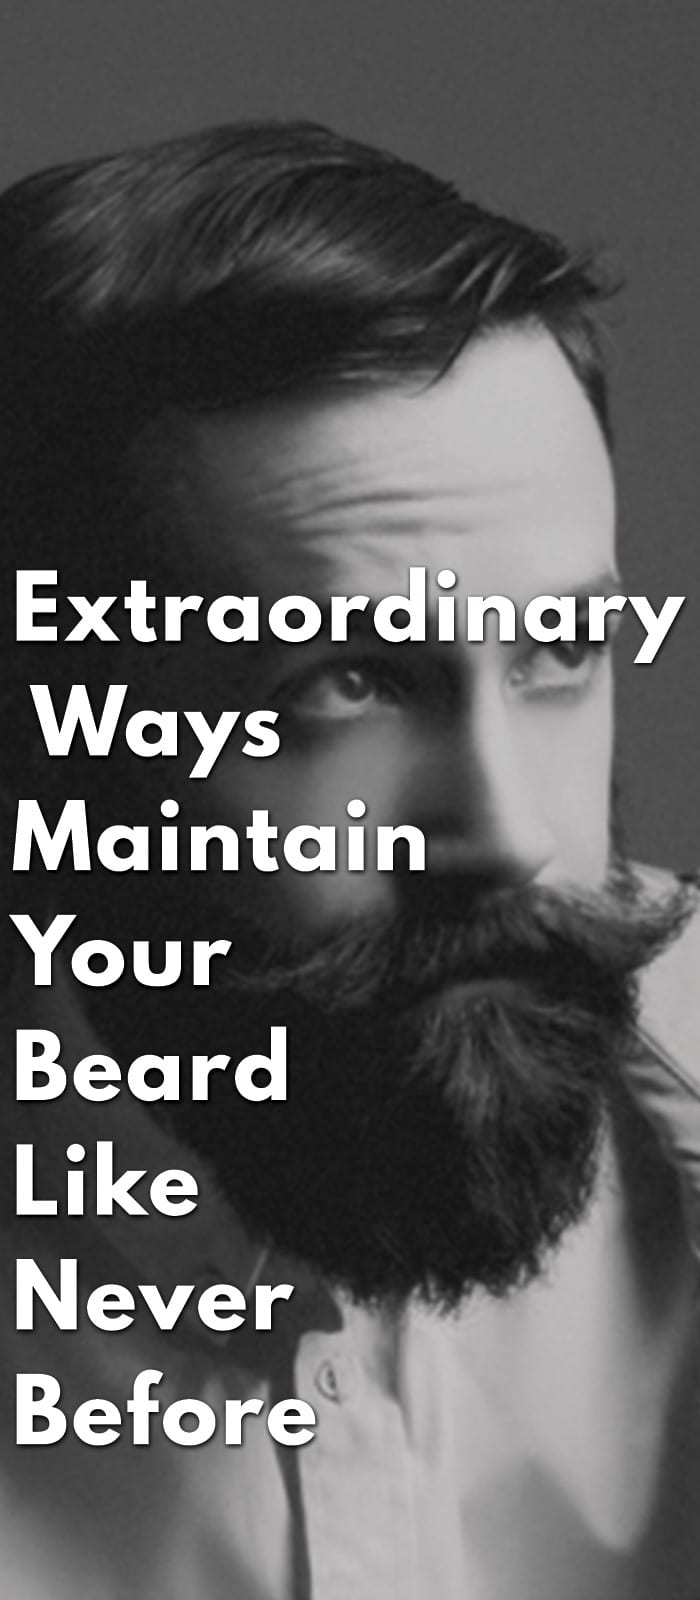 Extraordinary-Ways-Maintain-Your-Beard-Like-Never-Before